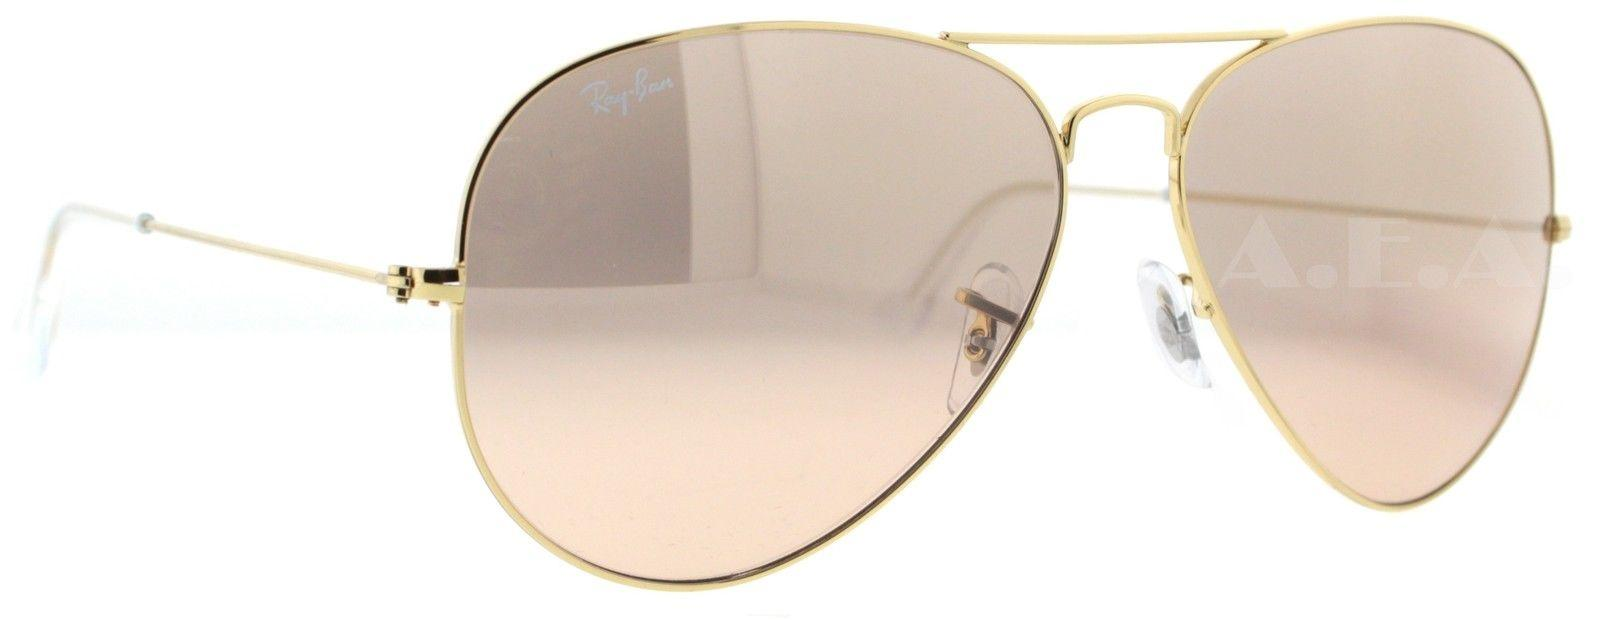 ray ban 3025 55mm silver mirror